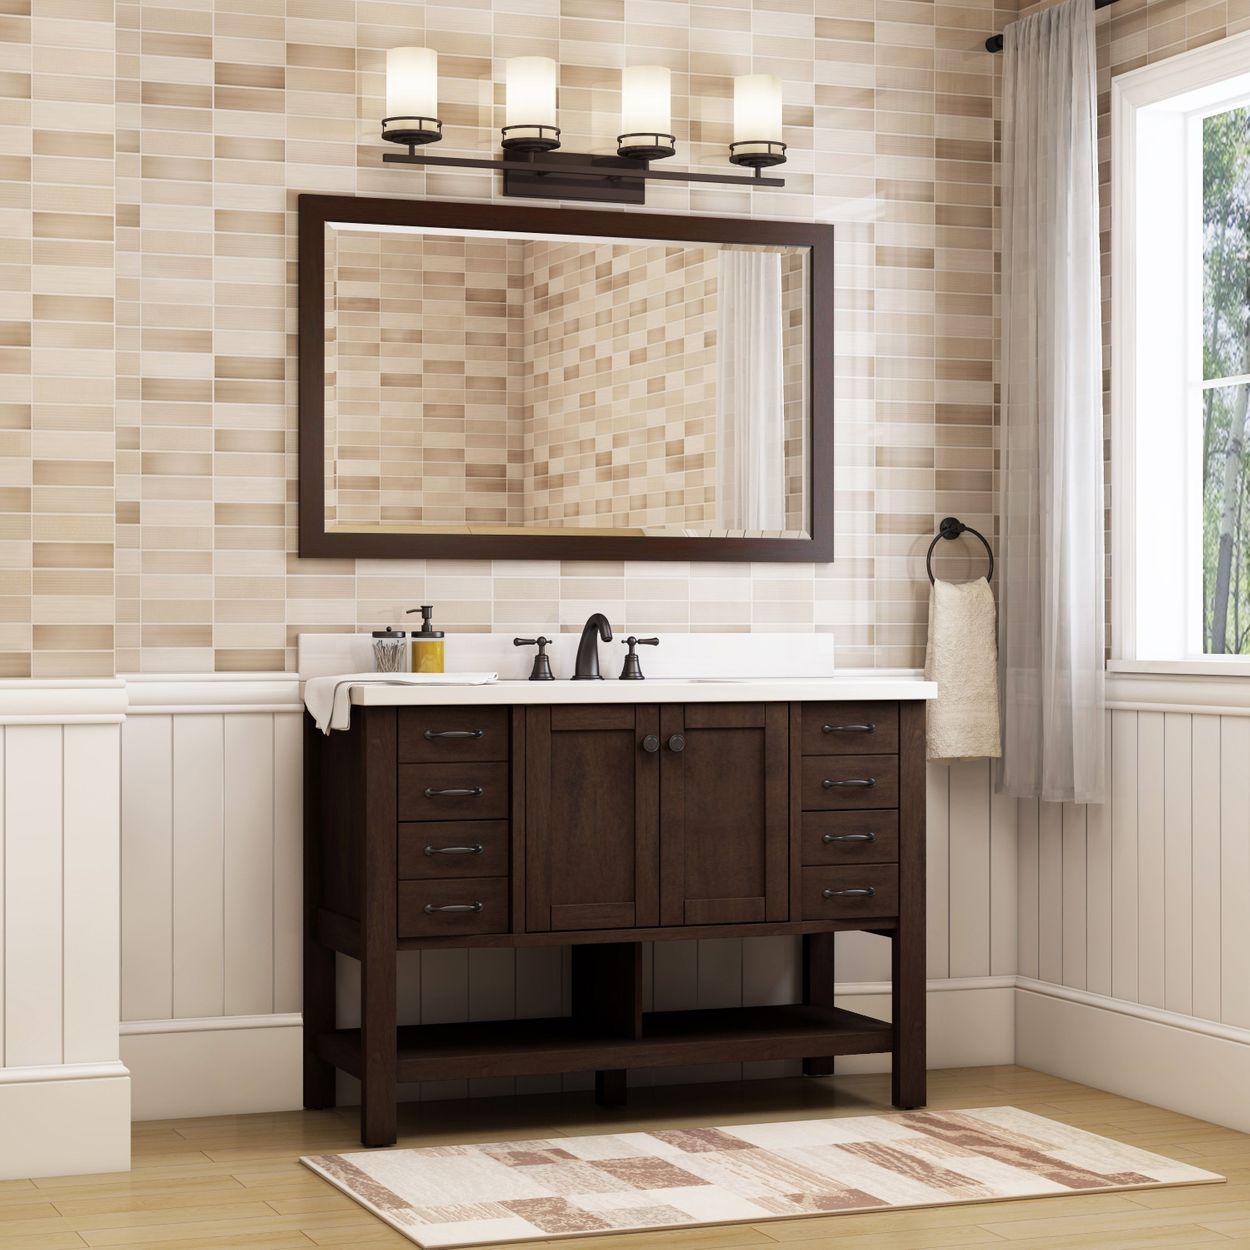 Allen Roth Kingscote 48 In Espresso Undermount Single Sink Bathroom Vanity With White Engineered Stone Top In The Bathroom Vanities With Tops Department At Lowes Com